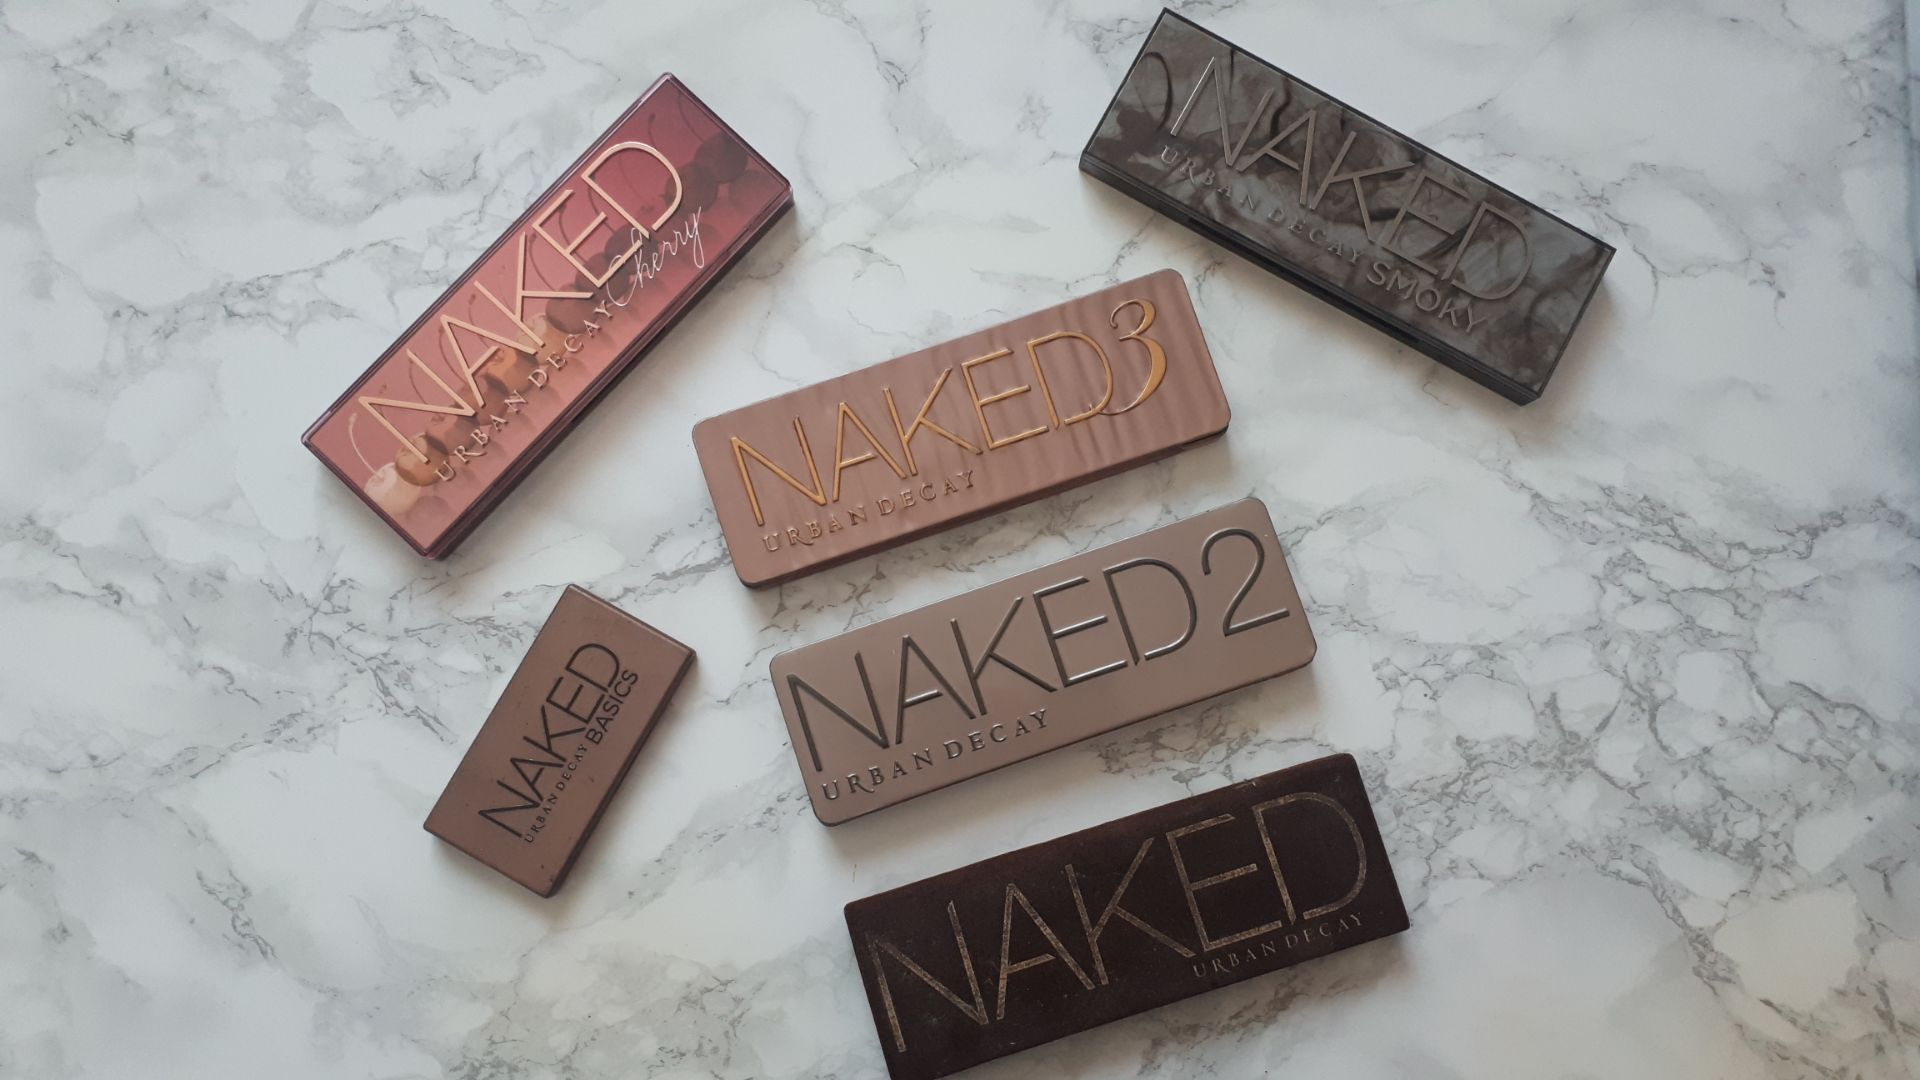 Urban Decay: Le Gang des Naked